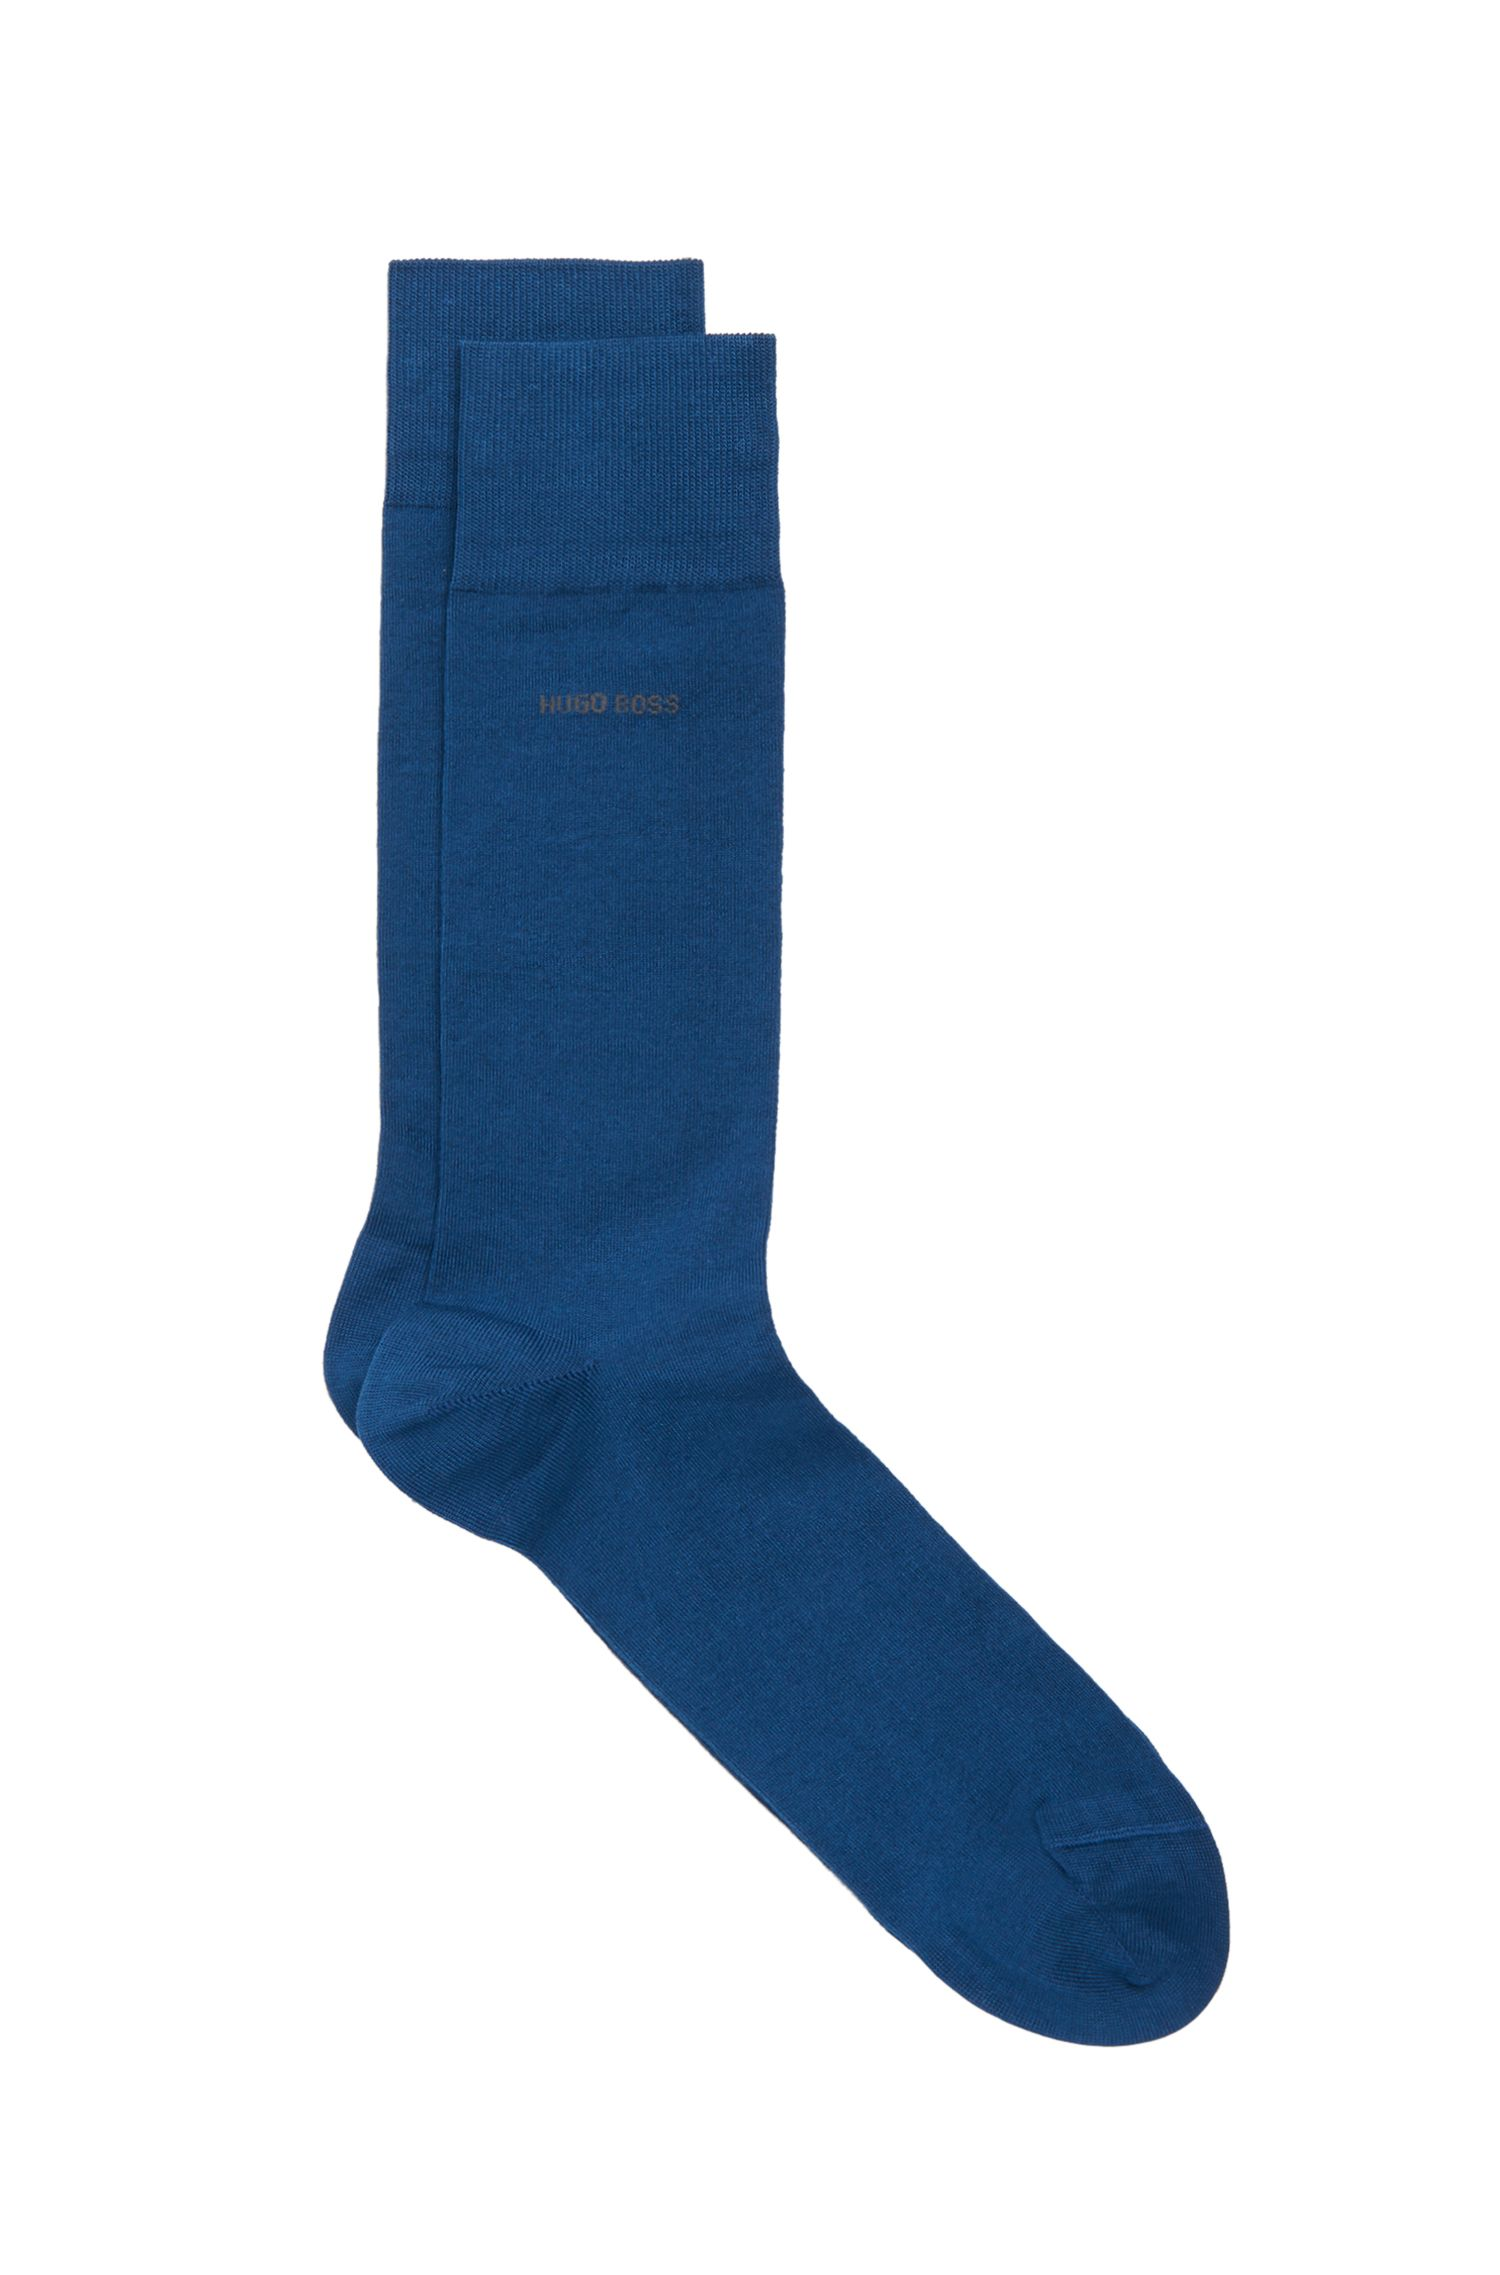 'Paul Colours US' | Stretch Cotton Socks